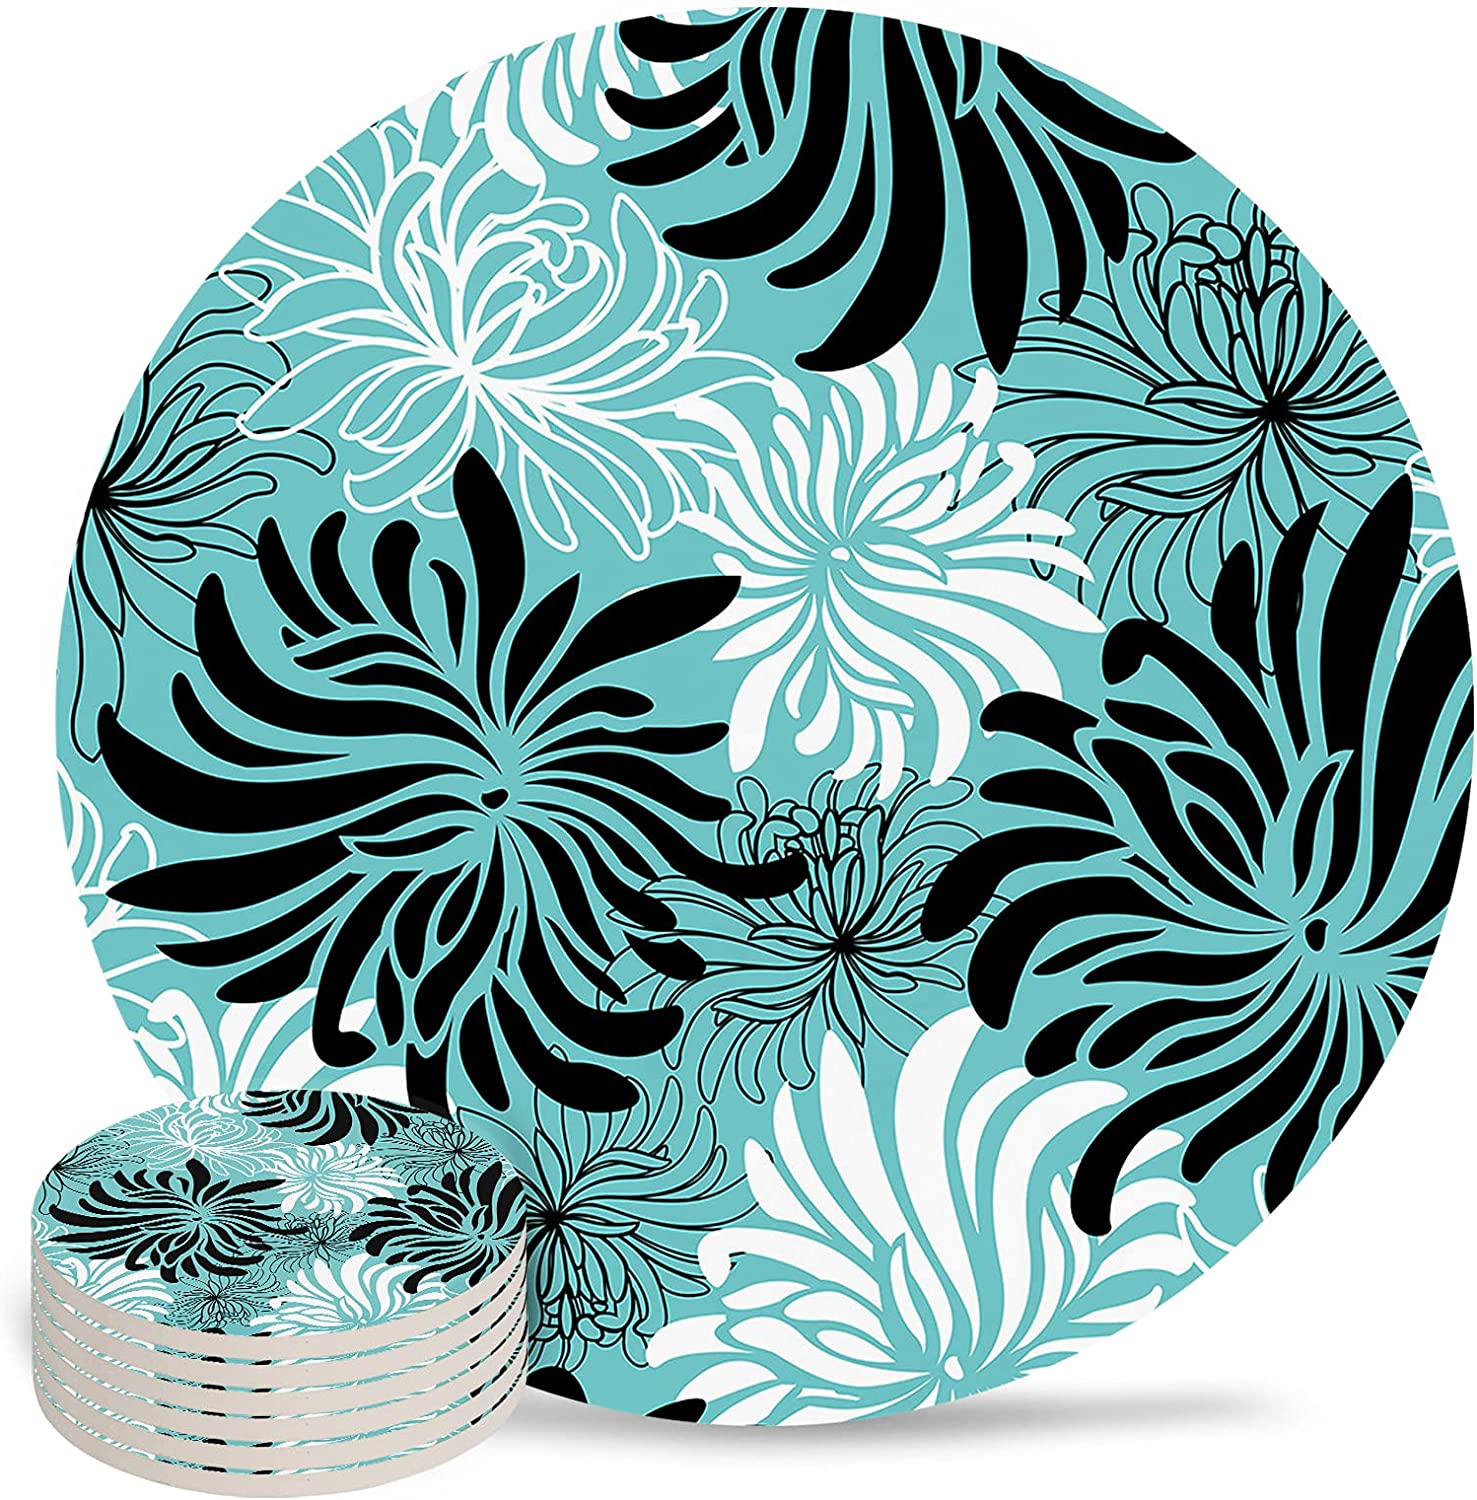 Chrysanthemum Coaster for Drinks 4 Jacksonville Los Angeles Mall Mall Inch Absorbent Pad Ceramic